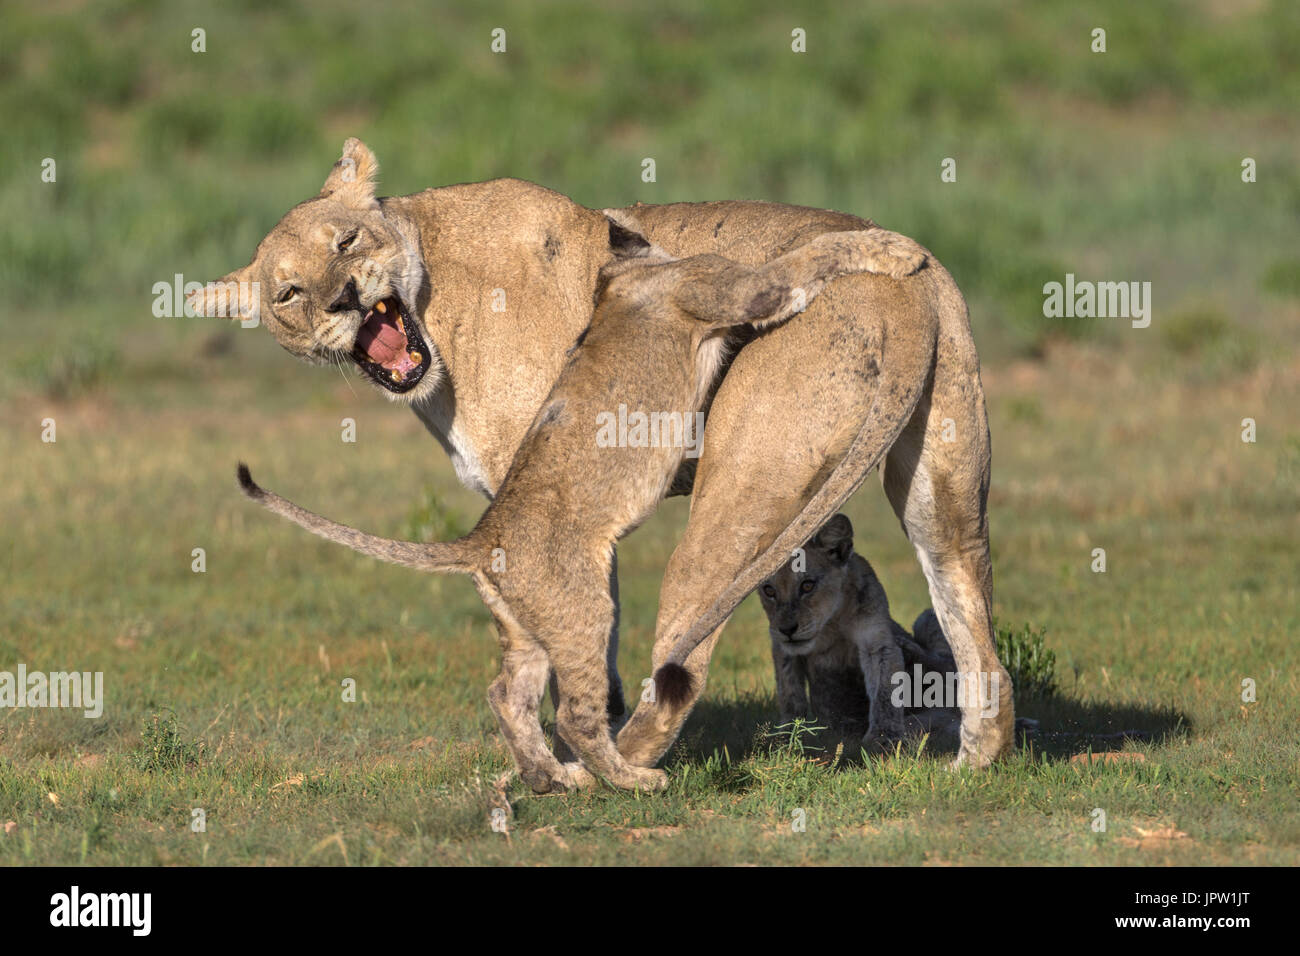 Lioness (Panthera leo) with cub, Kgalagadi transfrontier park, Northern Cape, South Africa, February 2017 - Stock Image